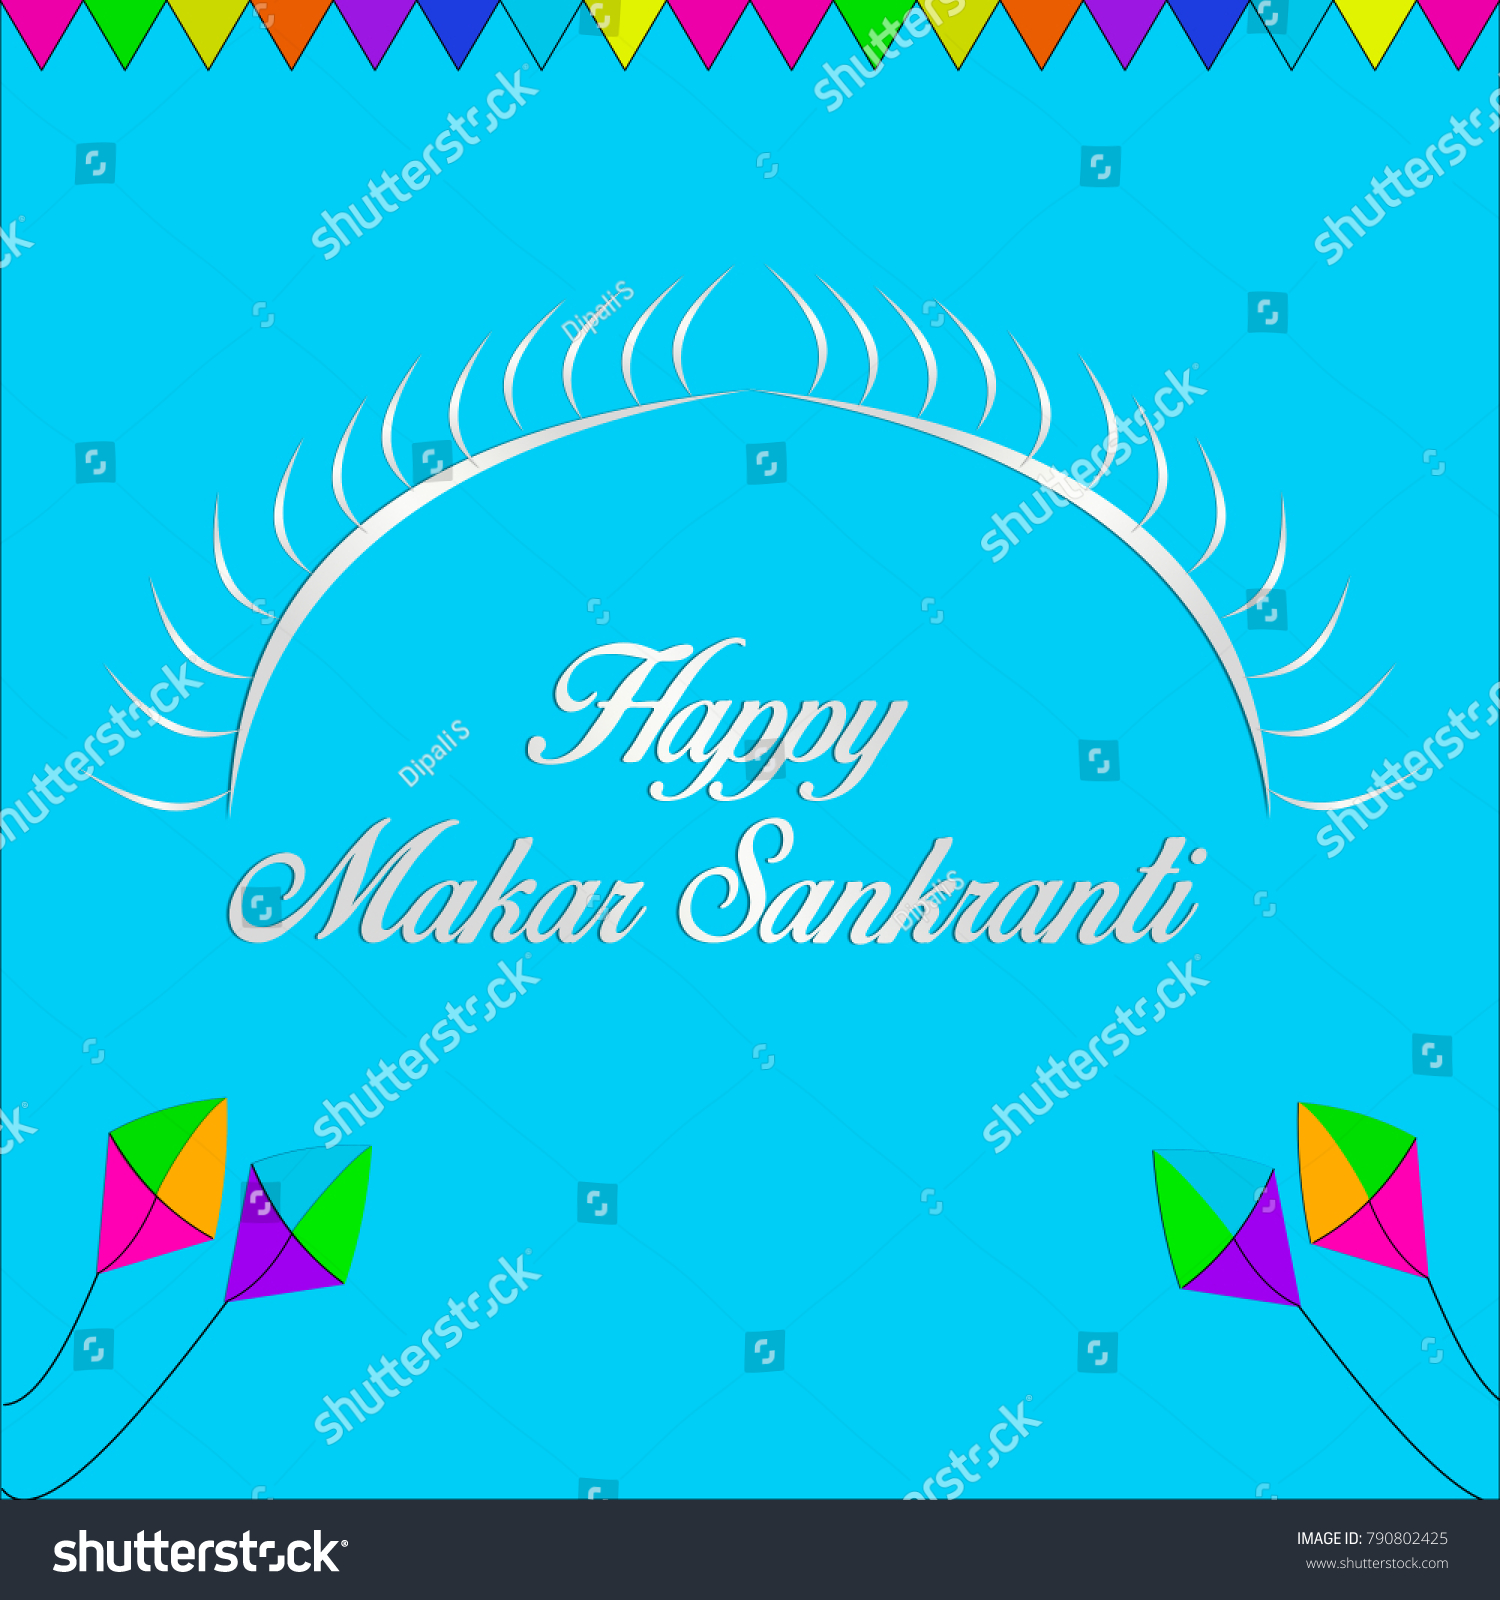 Happy makar sankranti greetings sun stock illustration 790802425 happy makar sankranti greetings sun stock illustration 790802425 shutterstock m4hsunfo